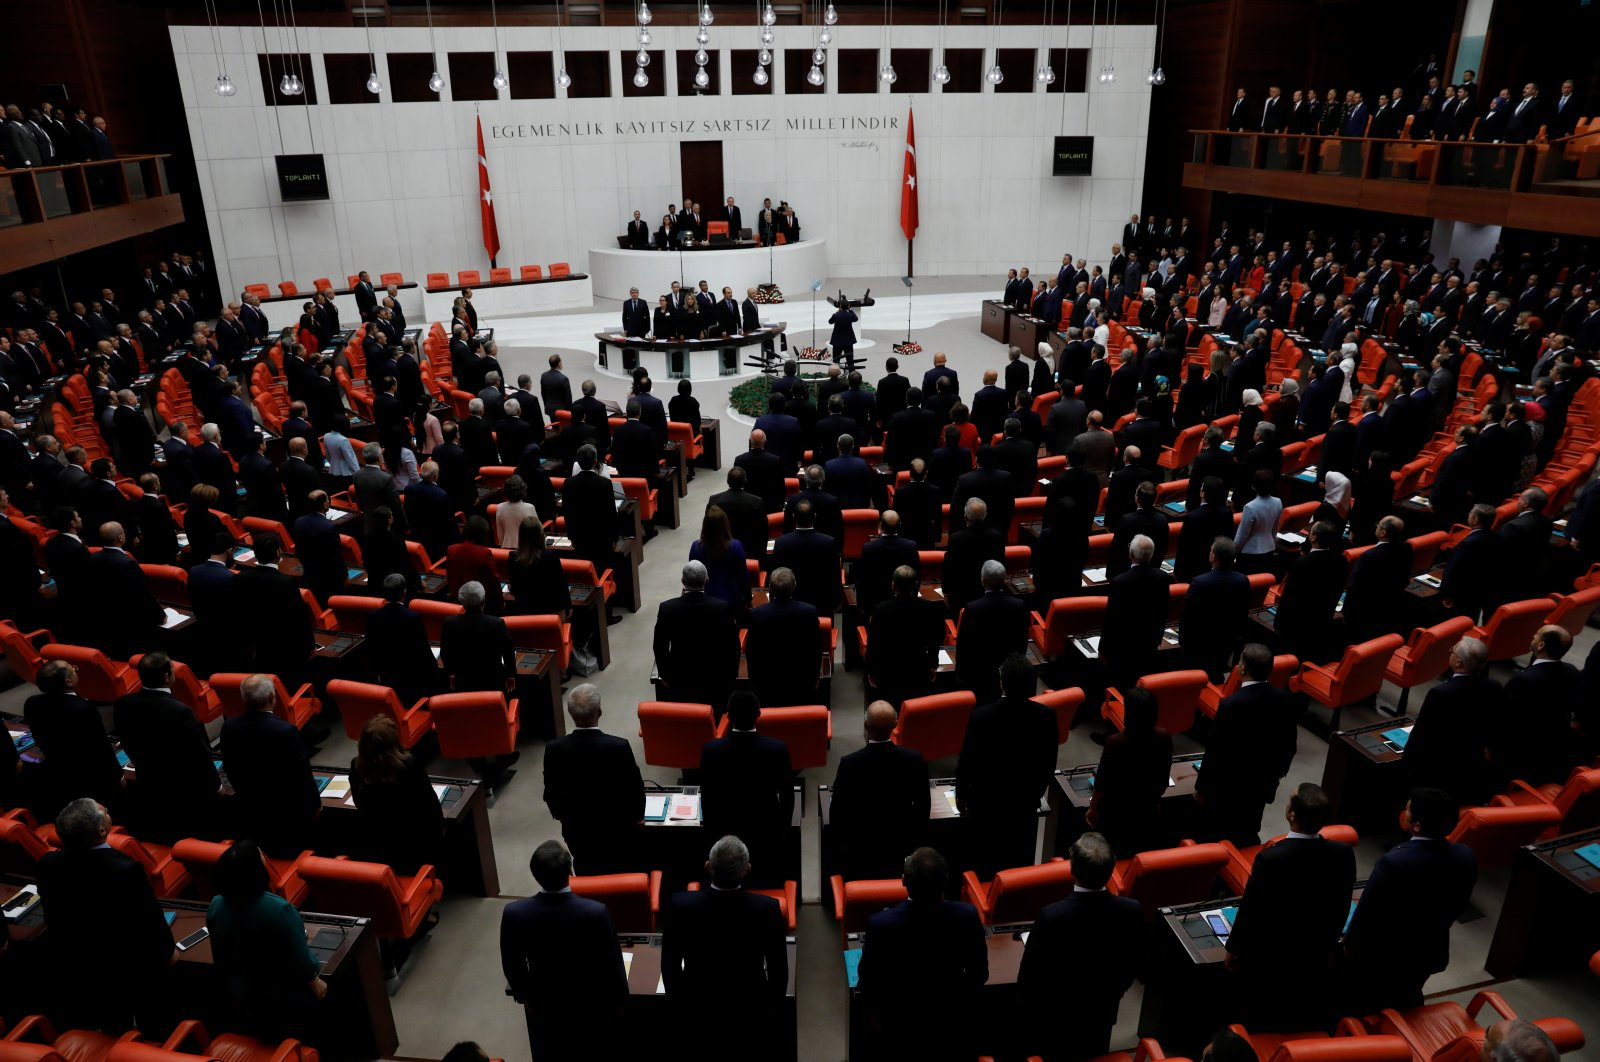 Members of parliament attend the reopening ceremony of the Turkish Parliament after the summer recess in Ankara, Turkey, Oct. 1, 2018. (Reuters File Photo)